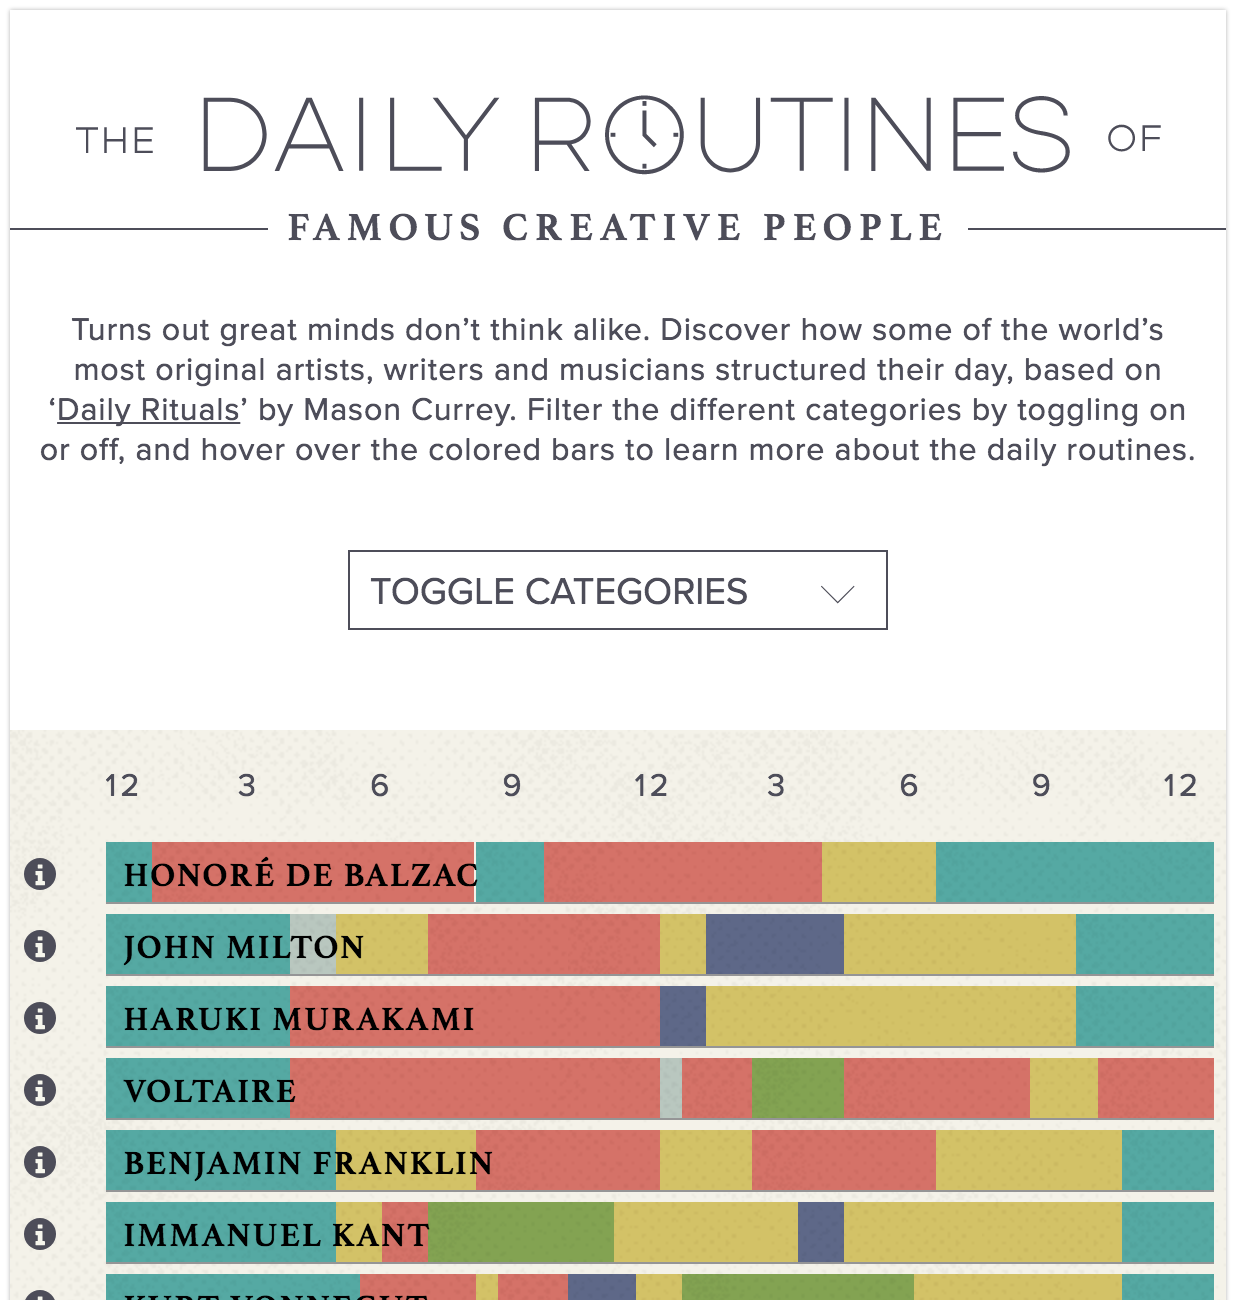 daily routines of famous creative people